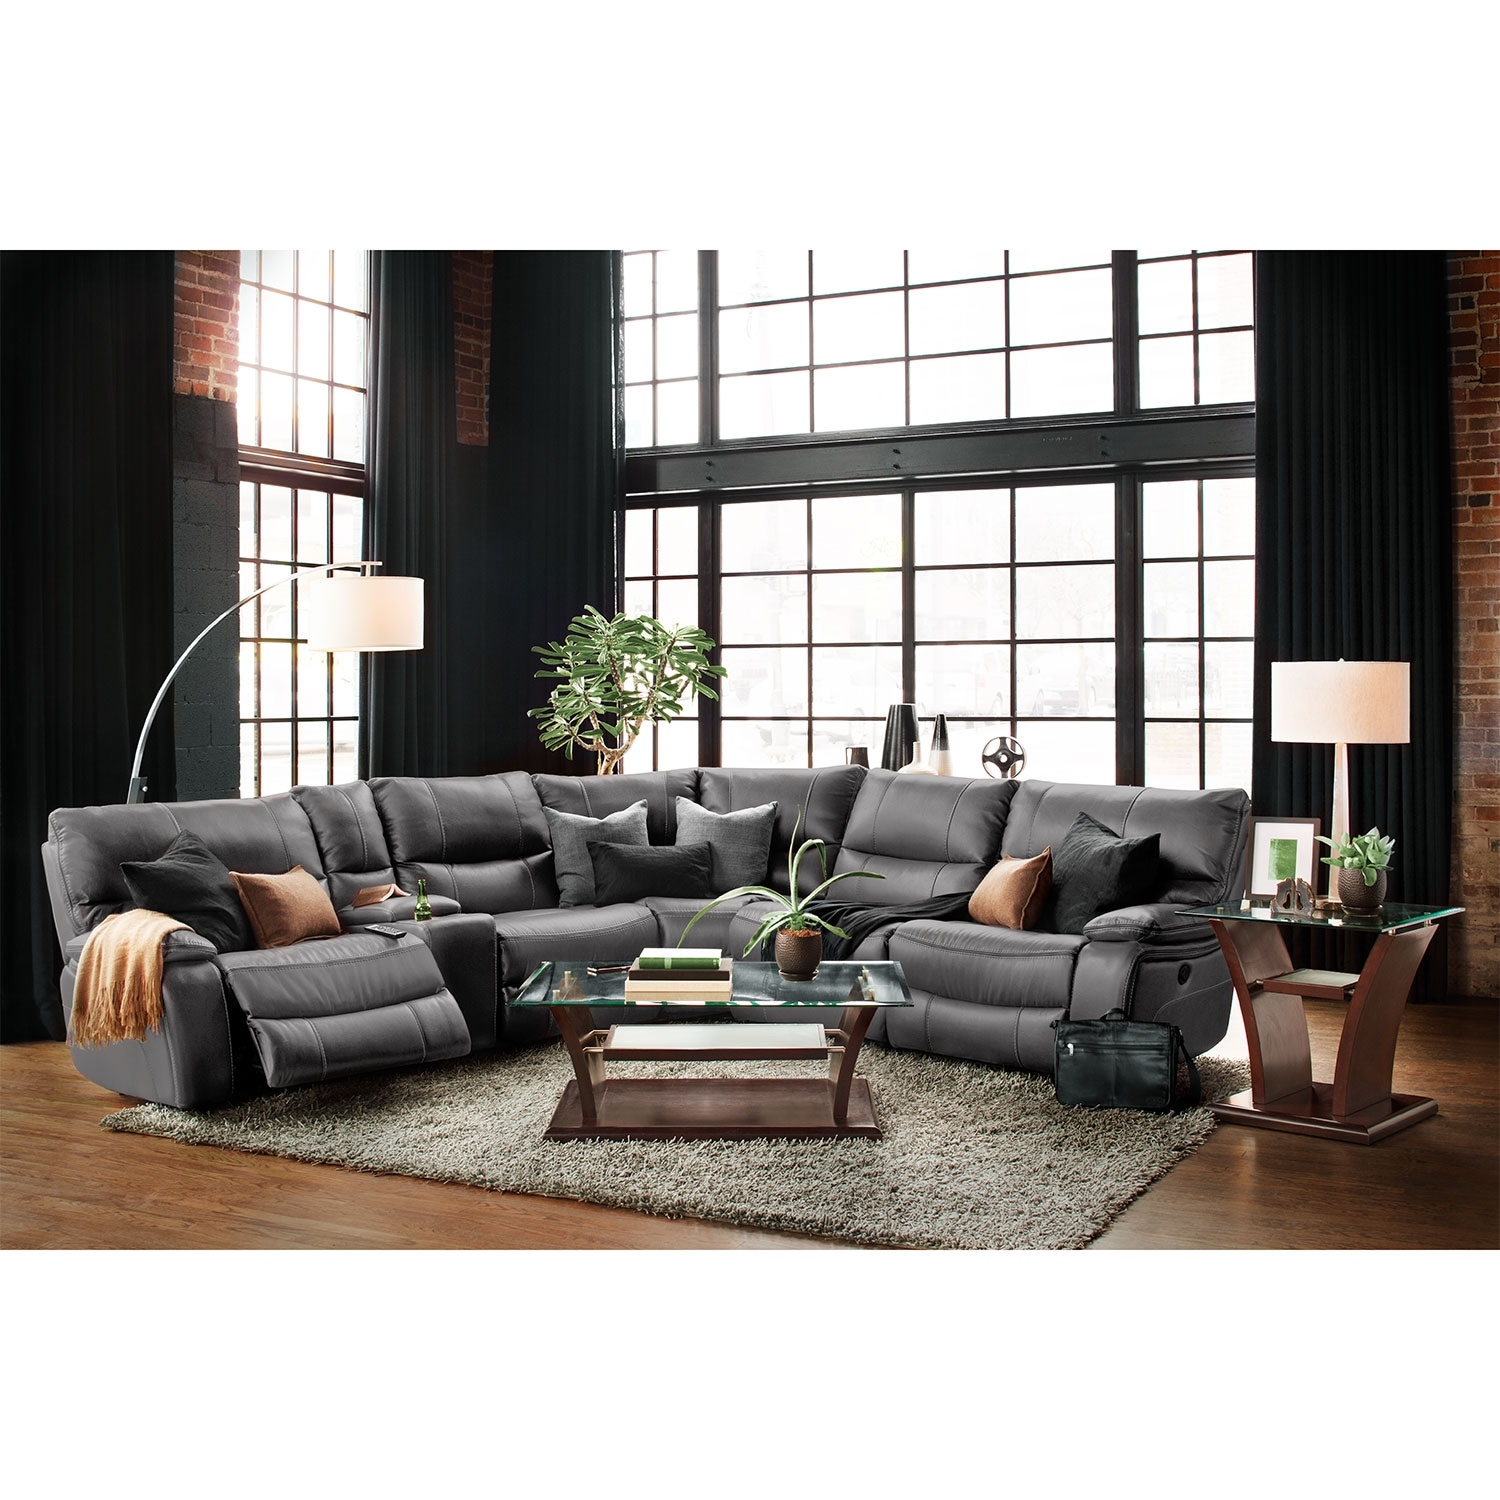 Orlando 6 Piece Power Reclining Sectional With 2 Stationary Chairs Gray Value City Furniture